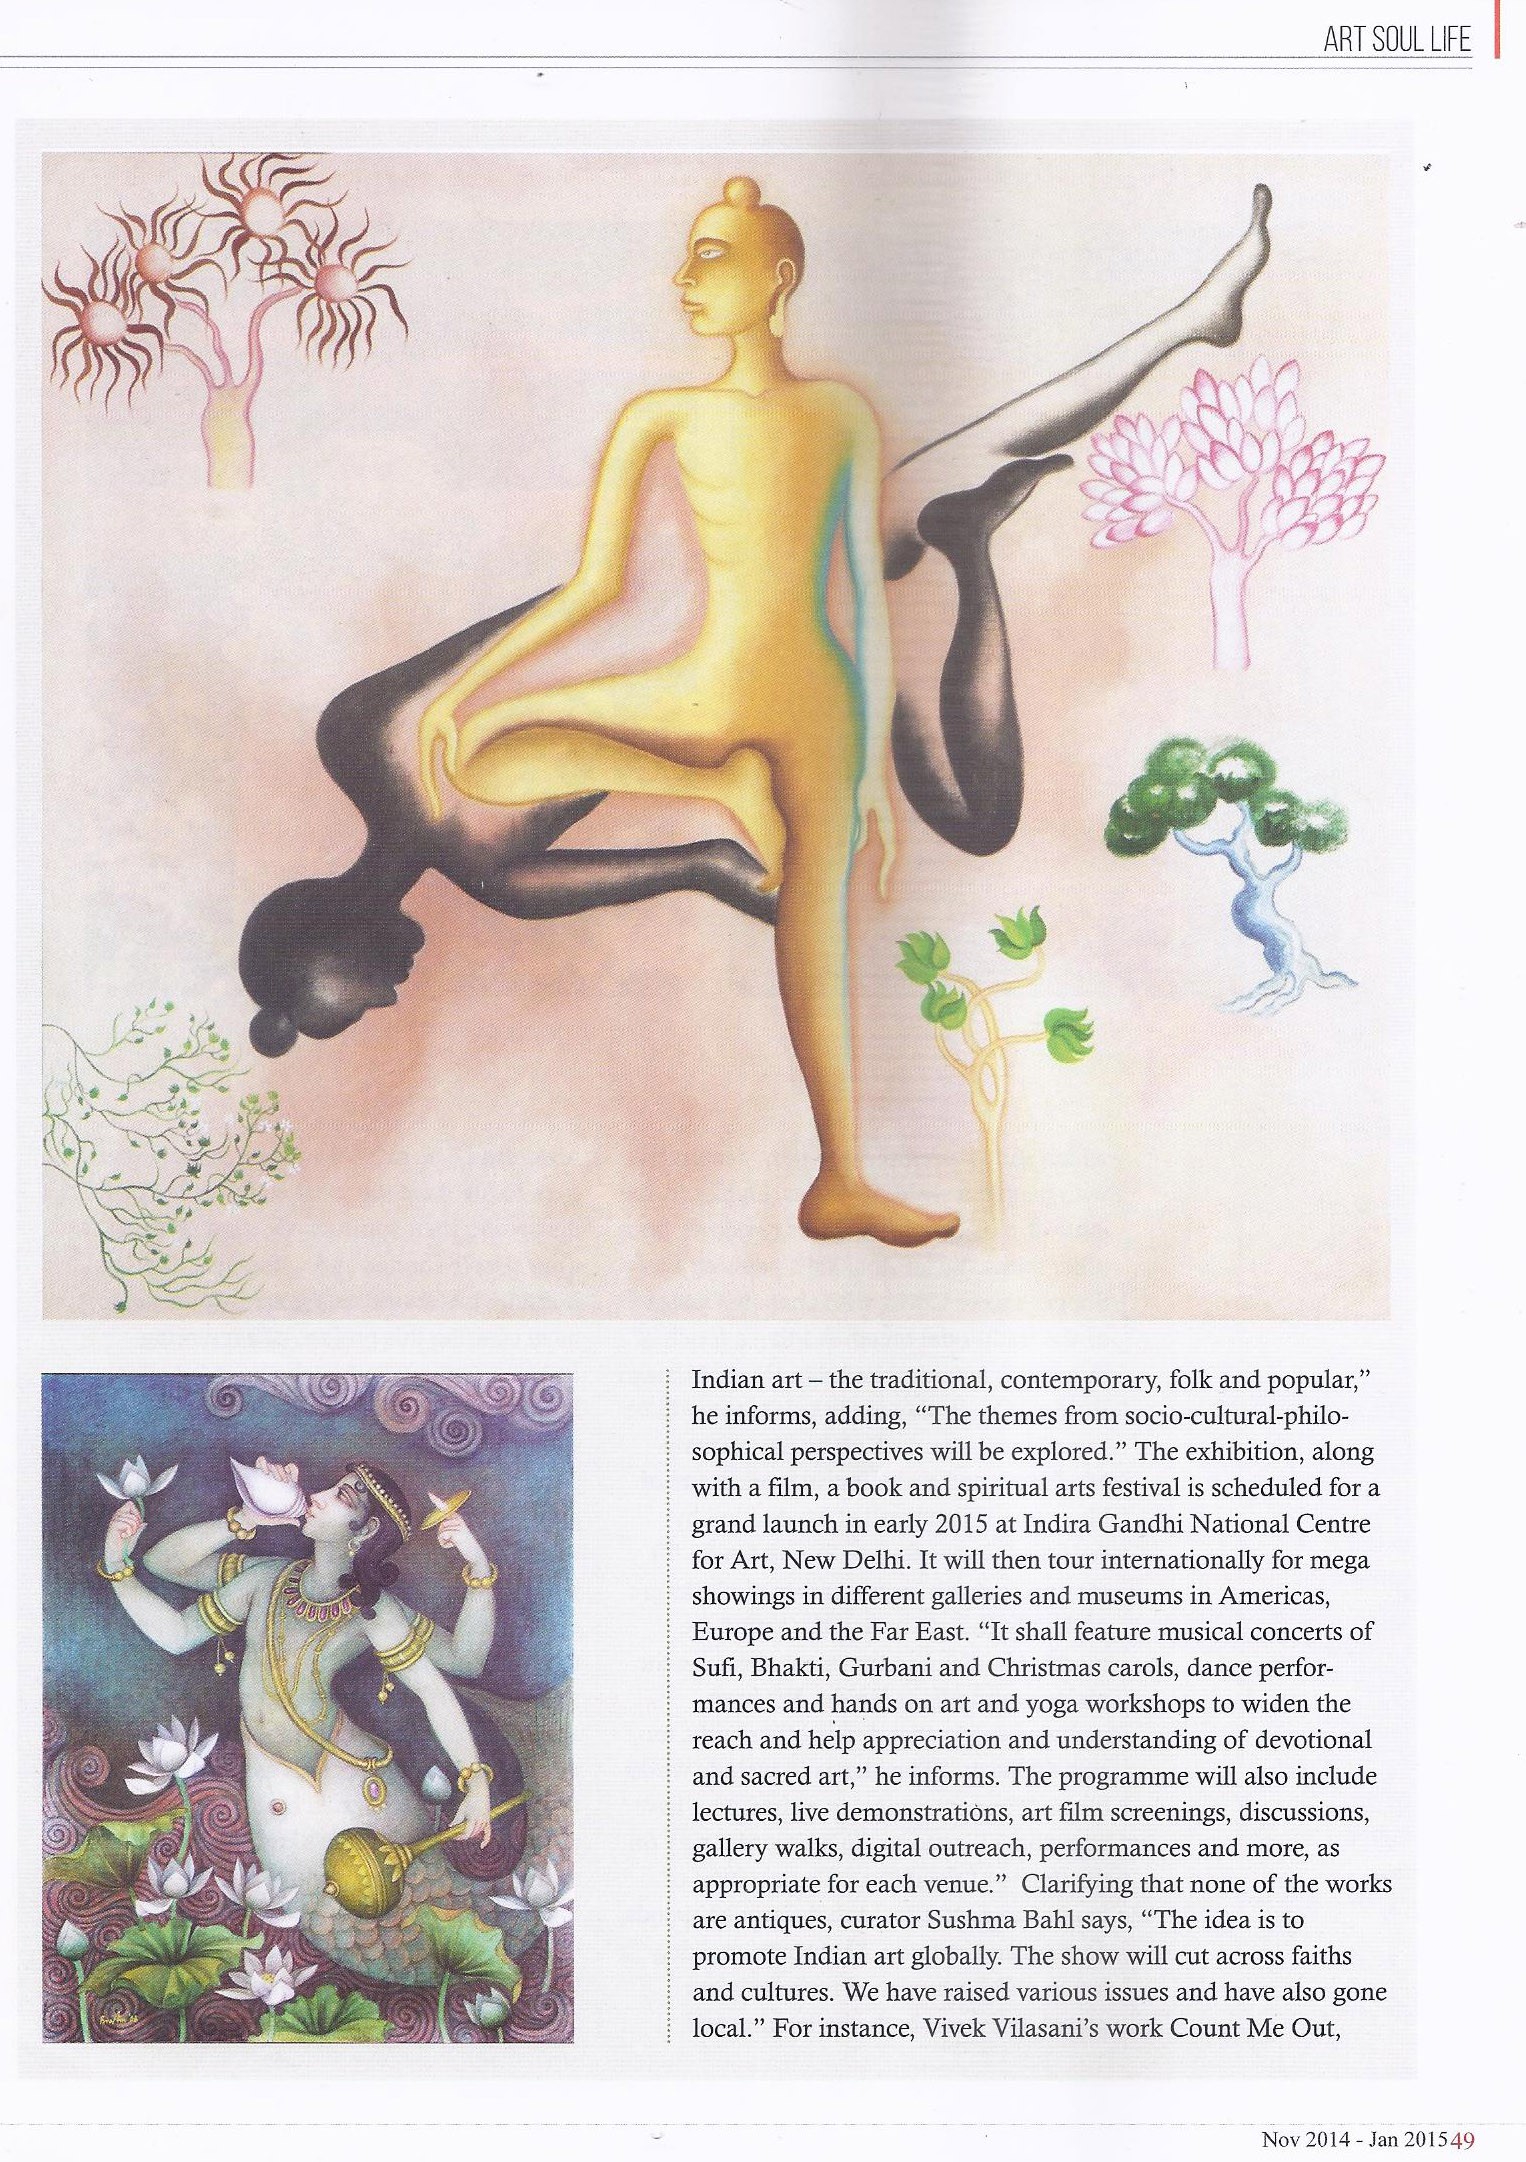 Art Soul Life (National Edition November 2014 - January 2015 Issue)- For the love of god Pg-4